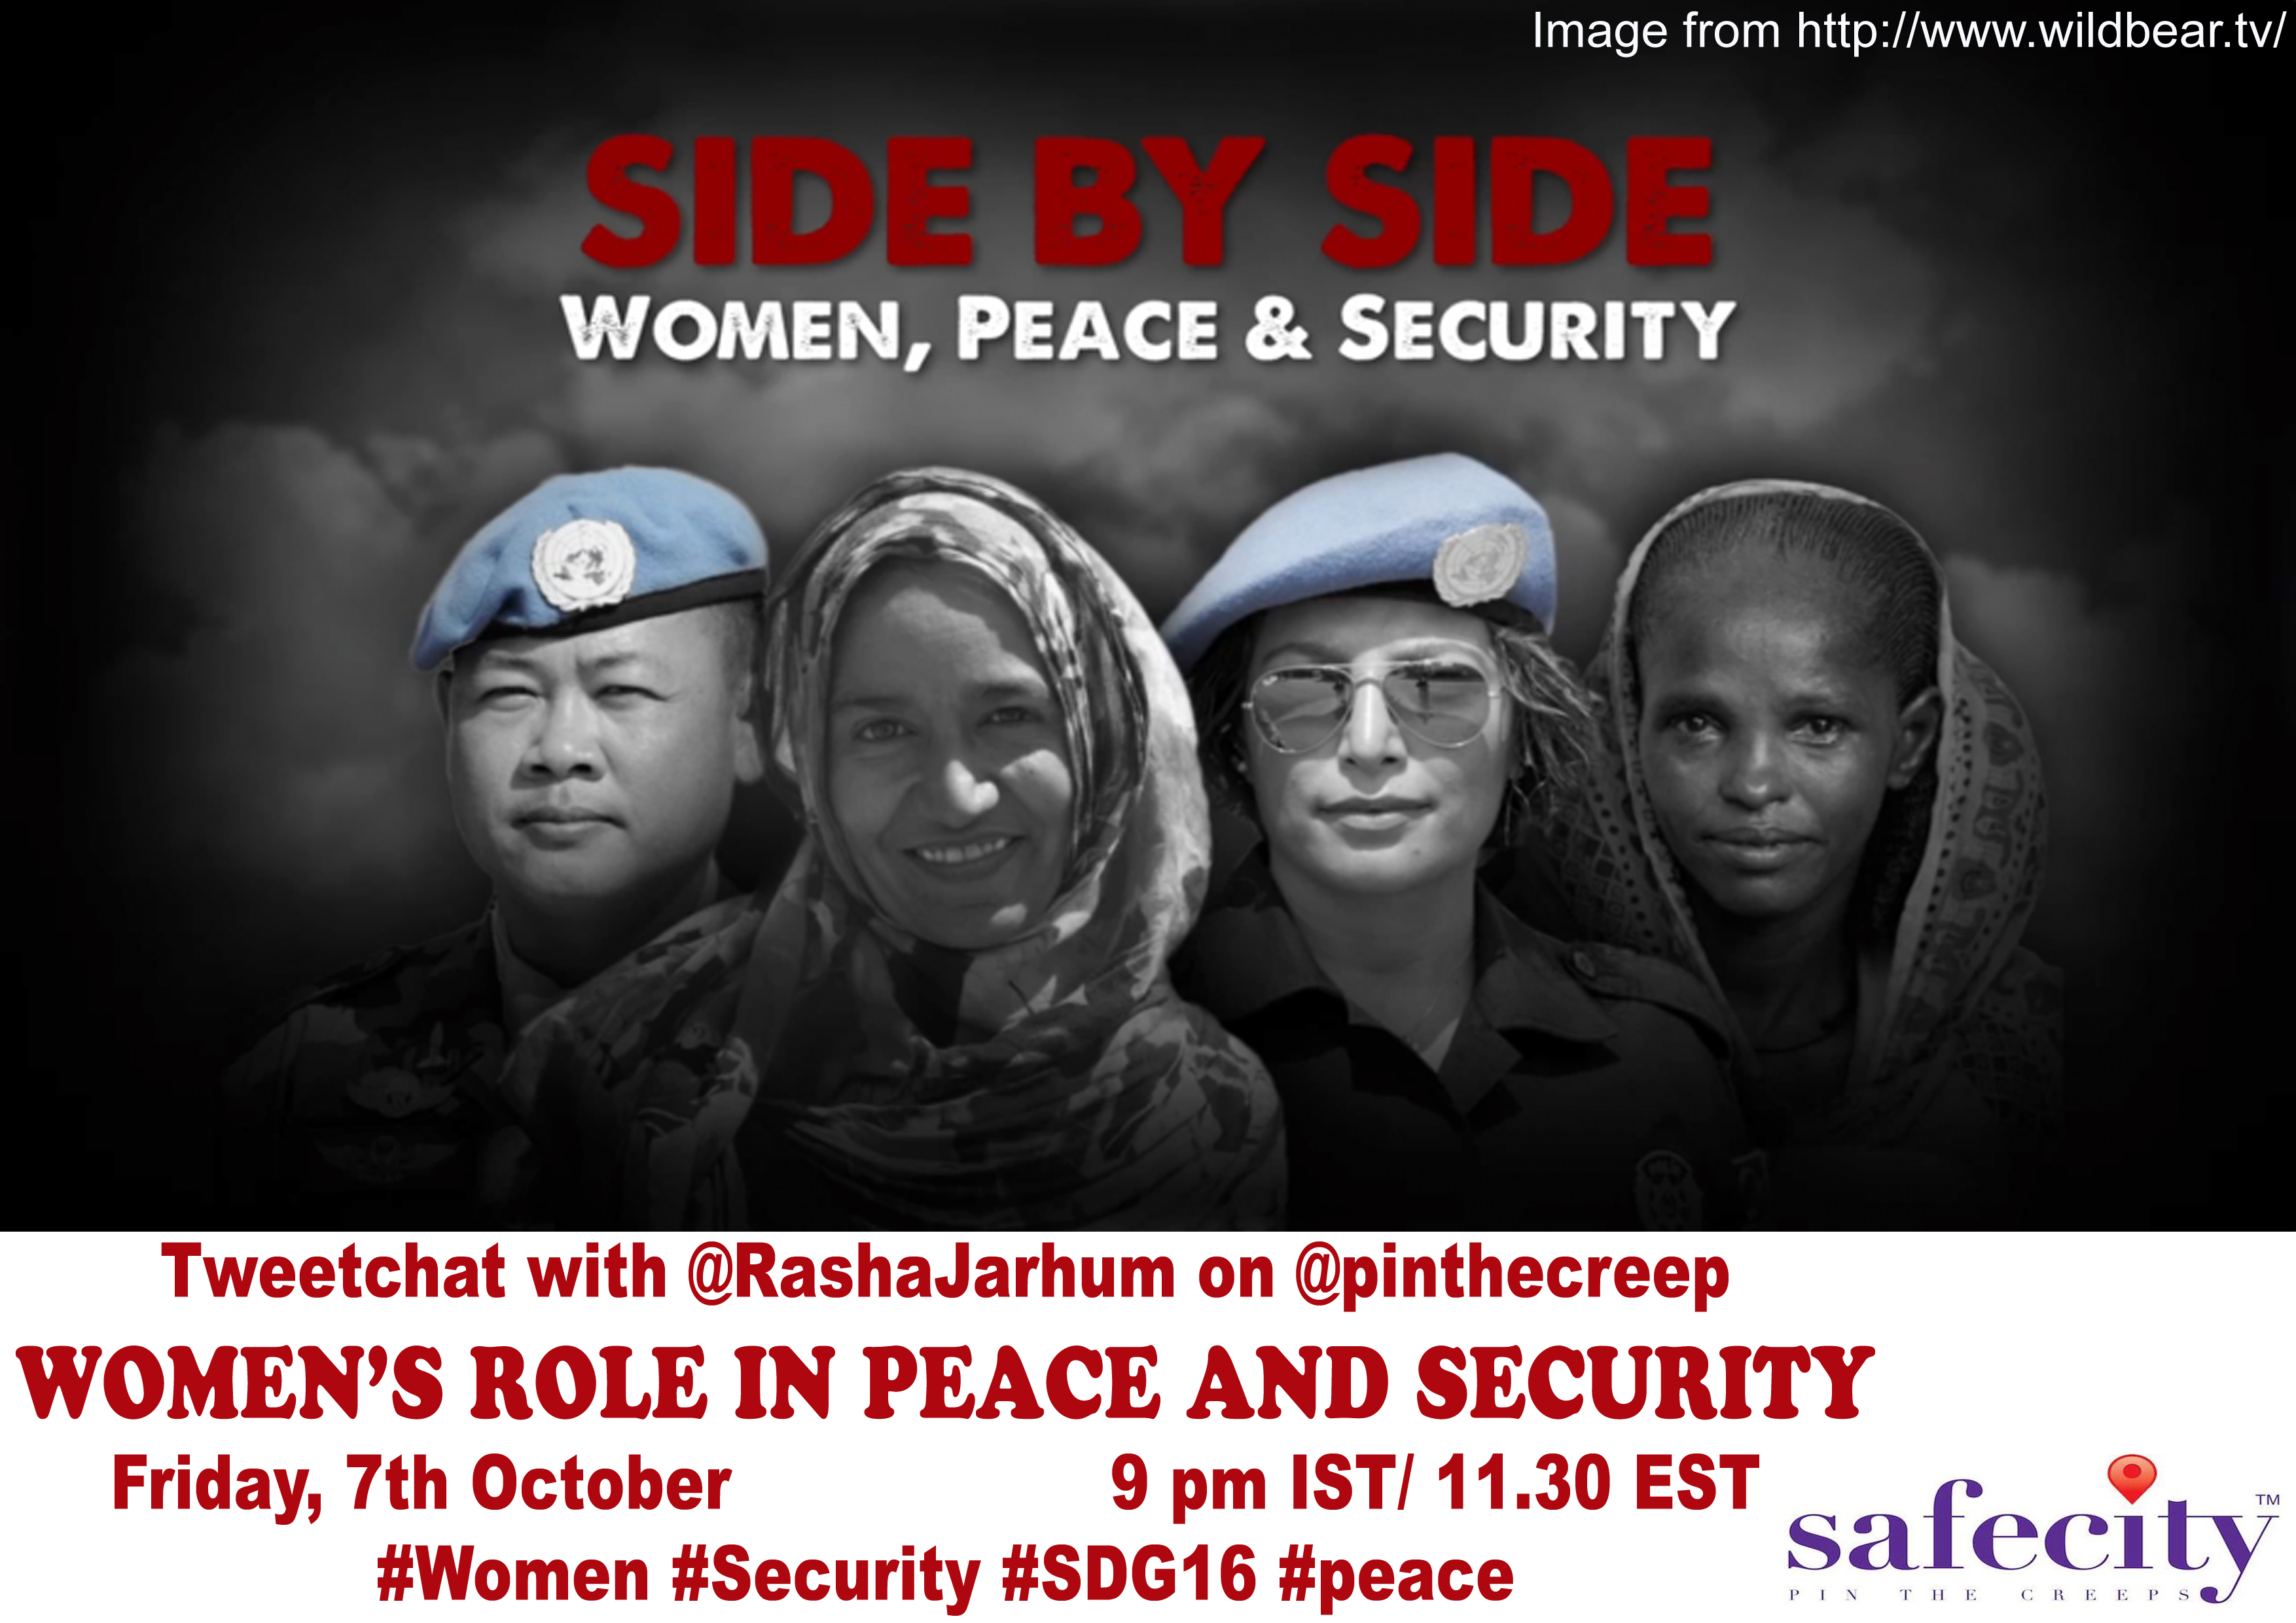 women-in-peace-and-security-tweetchat